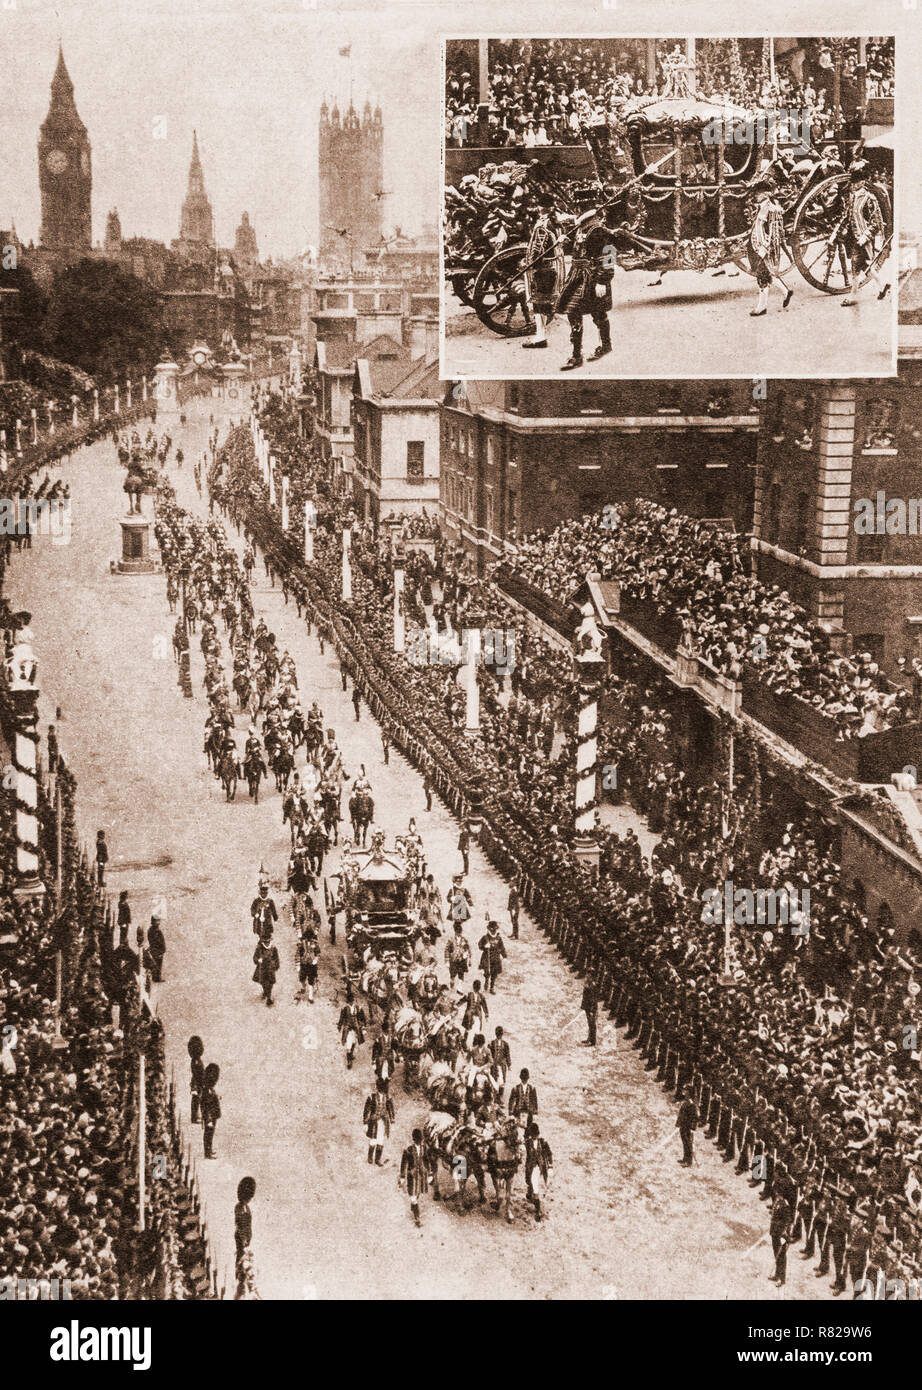 The coronation procession of George V and Mary of Teck as King and Queen of the United Kingdom and the British Empire en route for Westminster Abbey, London, on 22 June 1911. This was second of four such events held during the 20th century and the last to be attended by royal representatives of the great continental European empires. - Stock Image